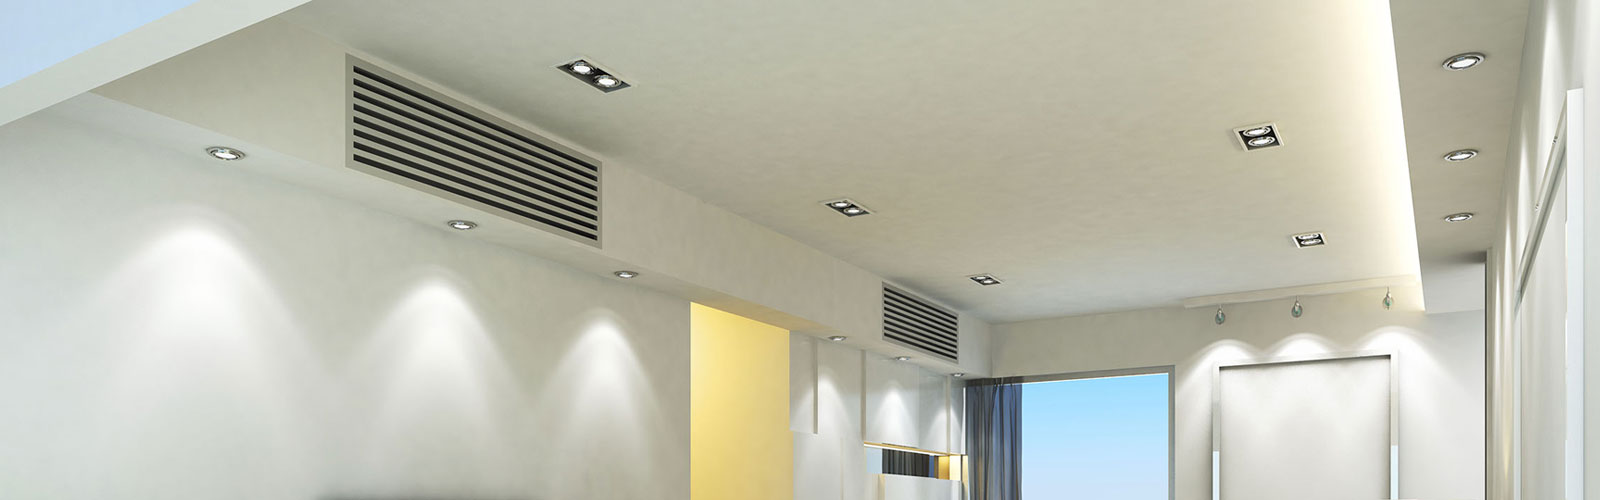 Ducted Heating Systems Altona